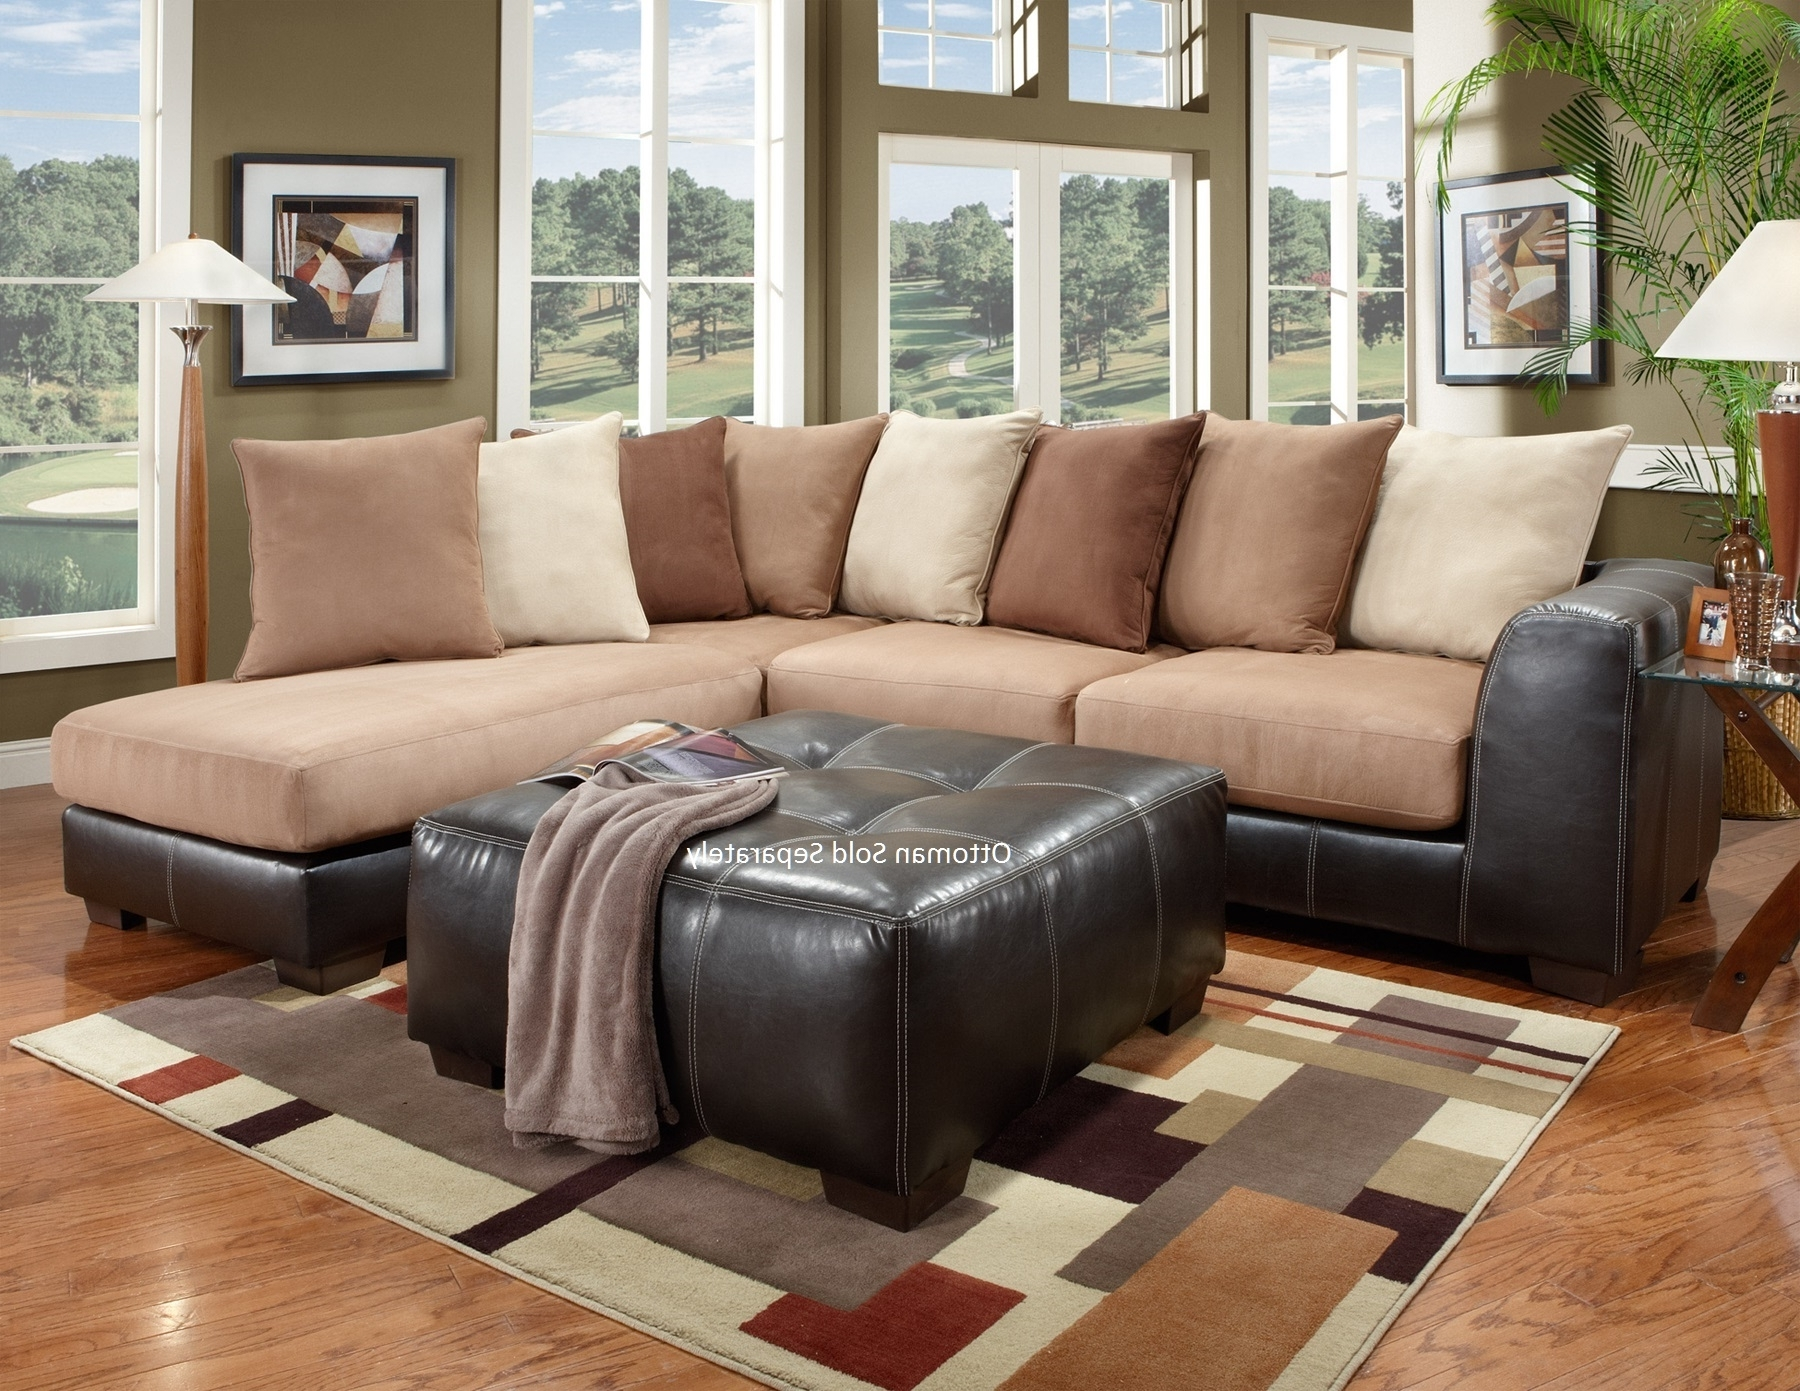 Camel Colored Sectional Sofas Regarding 2018 Furniture (View 9 of 15)